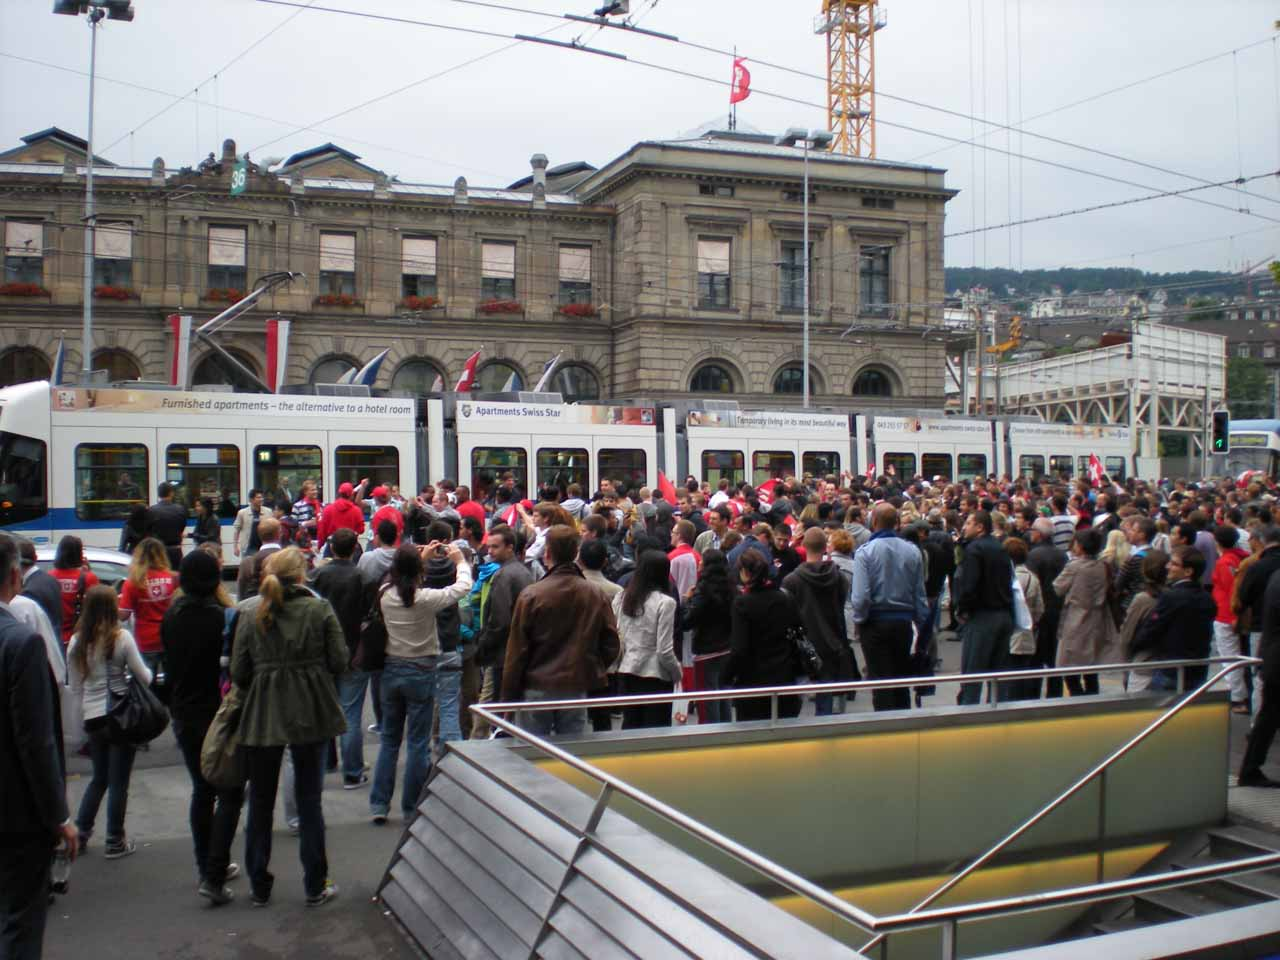 In Zurich during the World Cup celebration